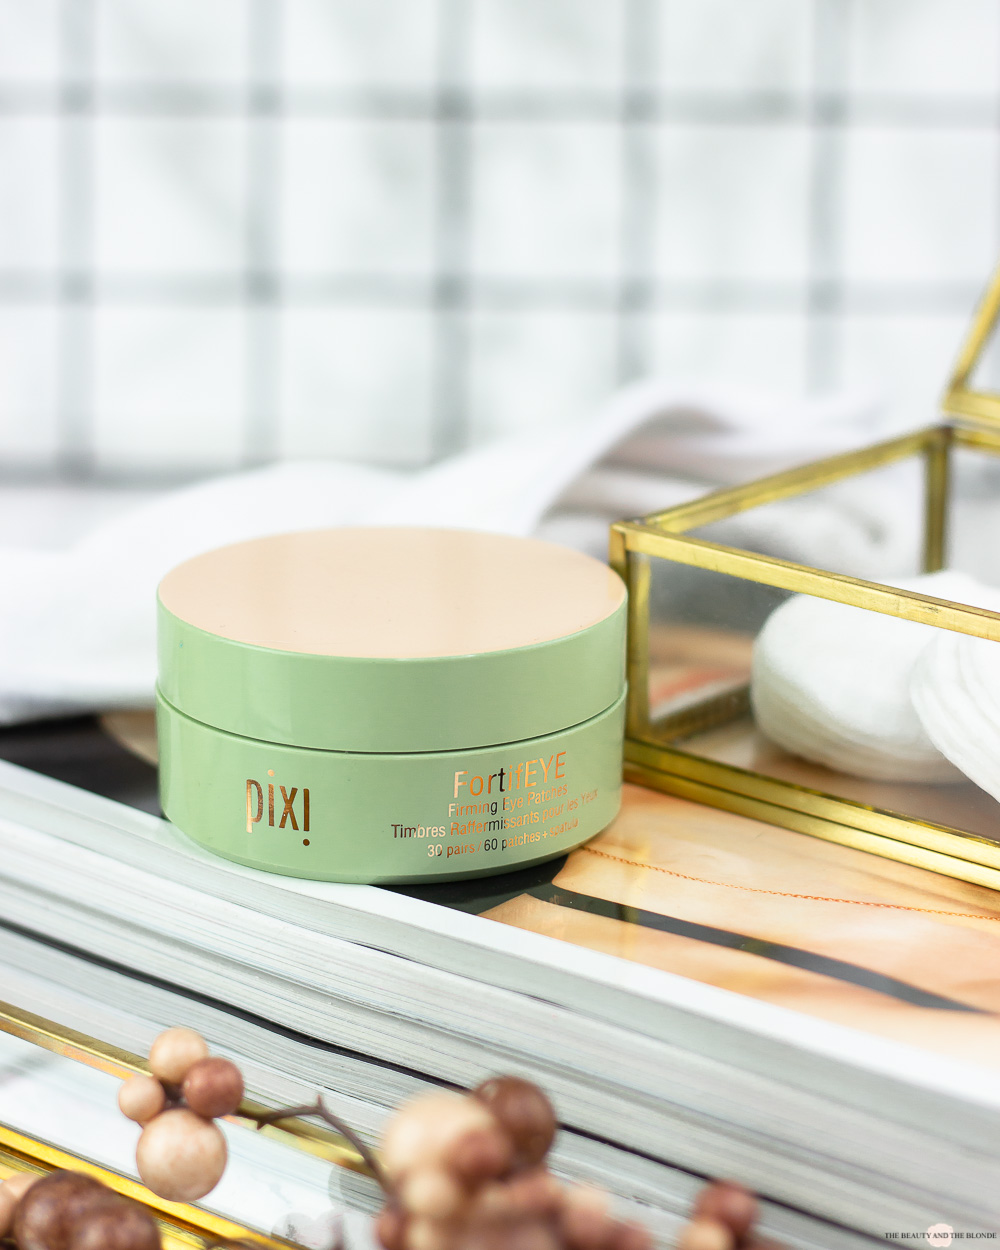 Pixi FortifEYE Firming Eye Patches Review